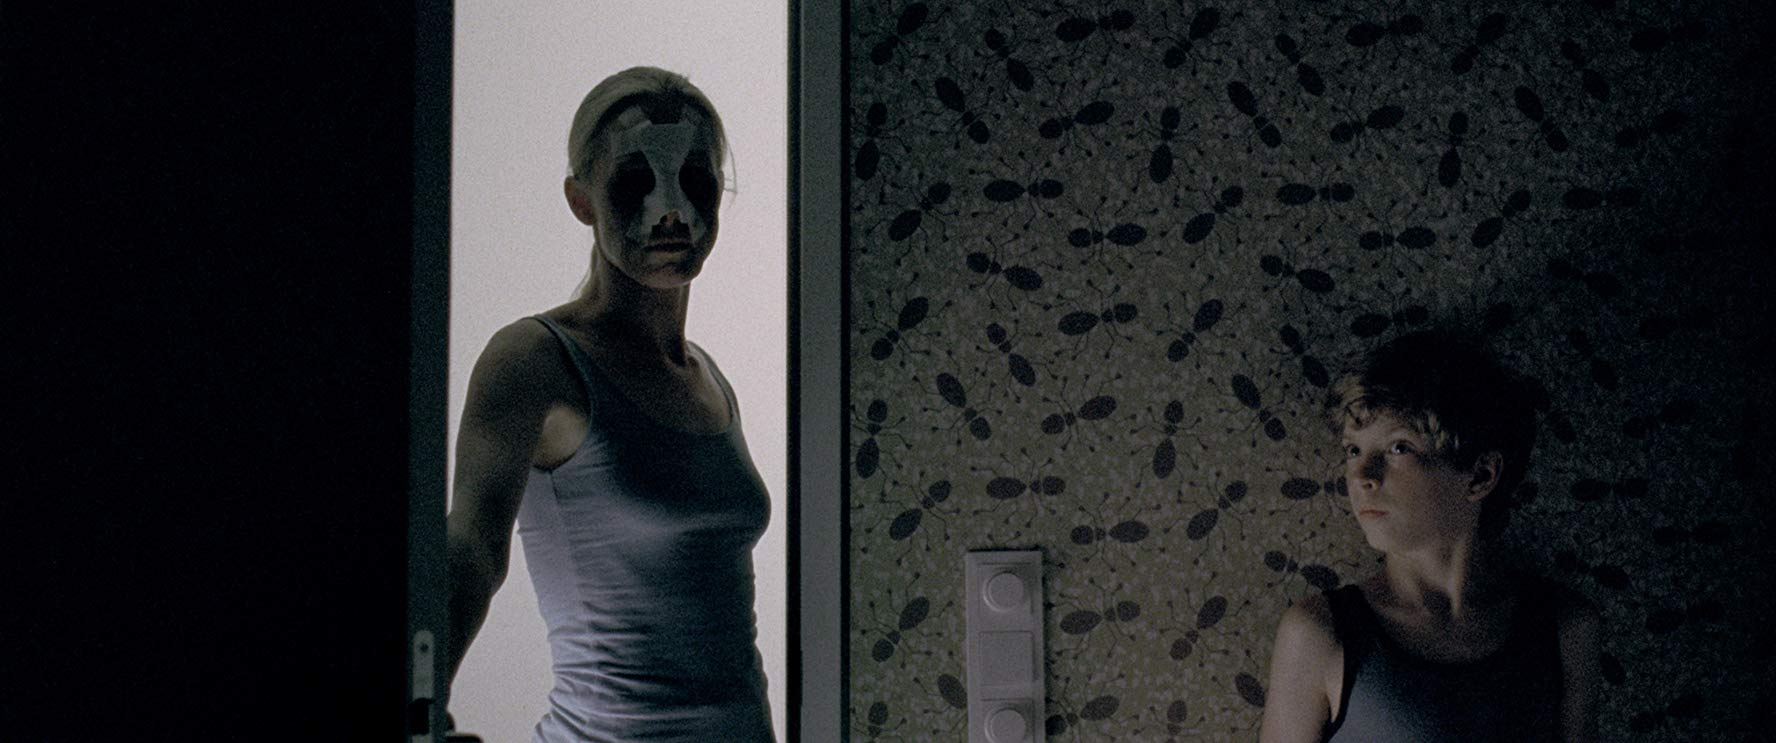 Ten anxiety-inducing horror movies to get your heart racing